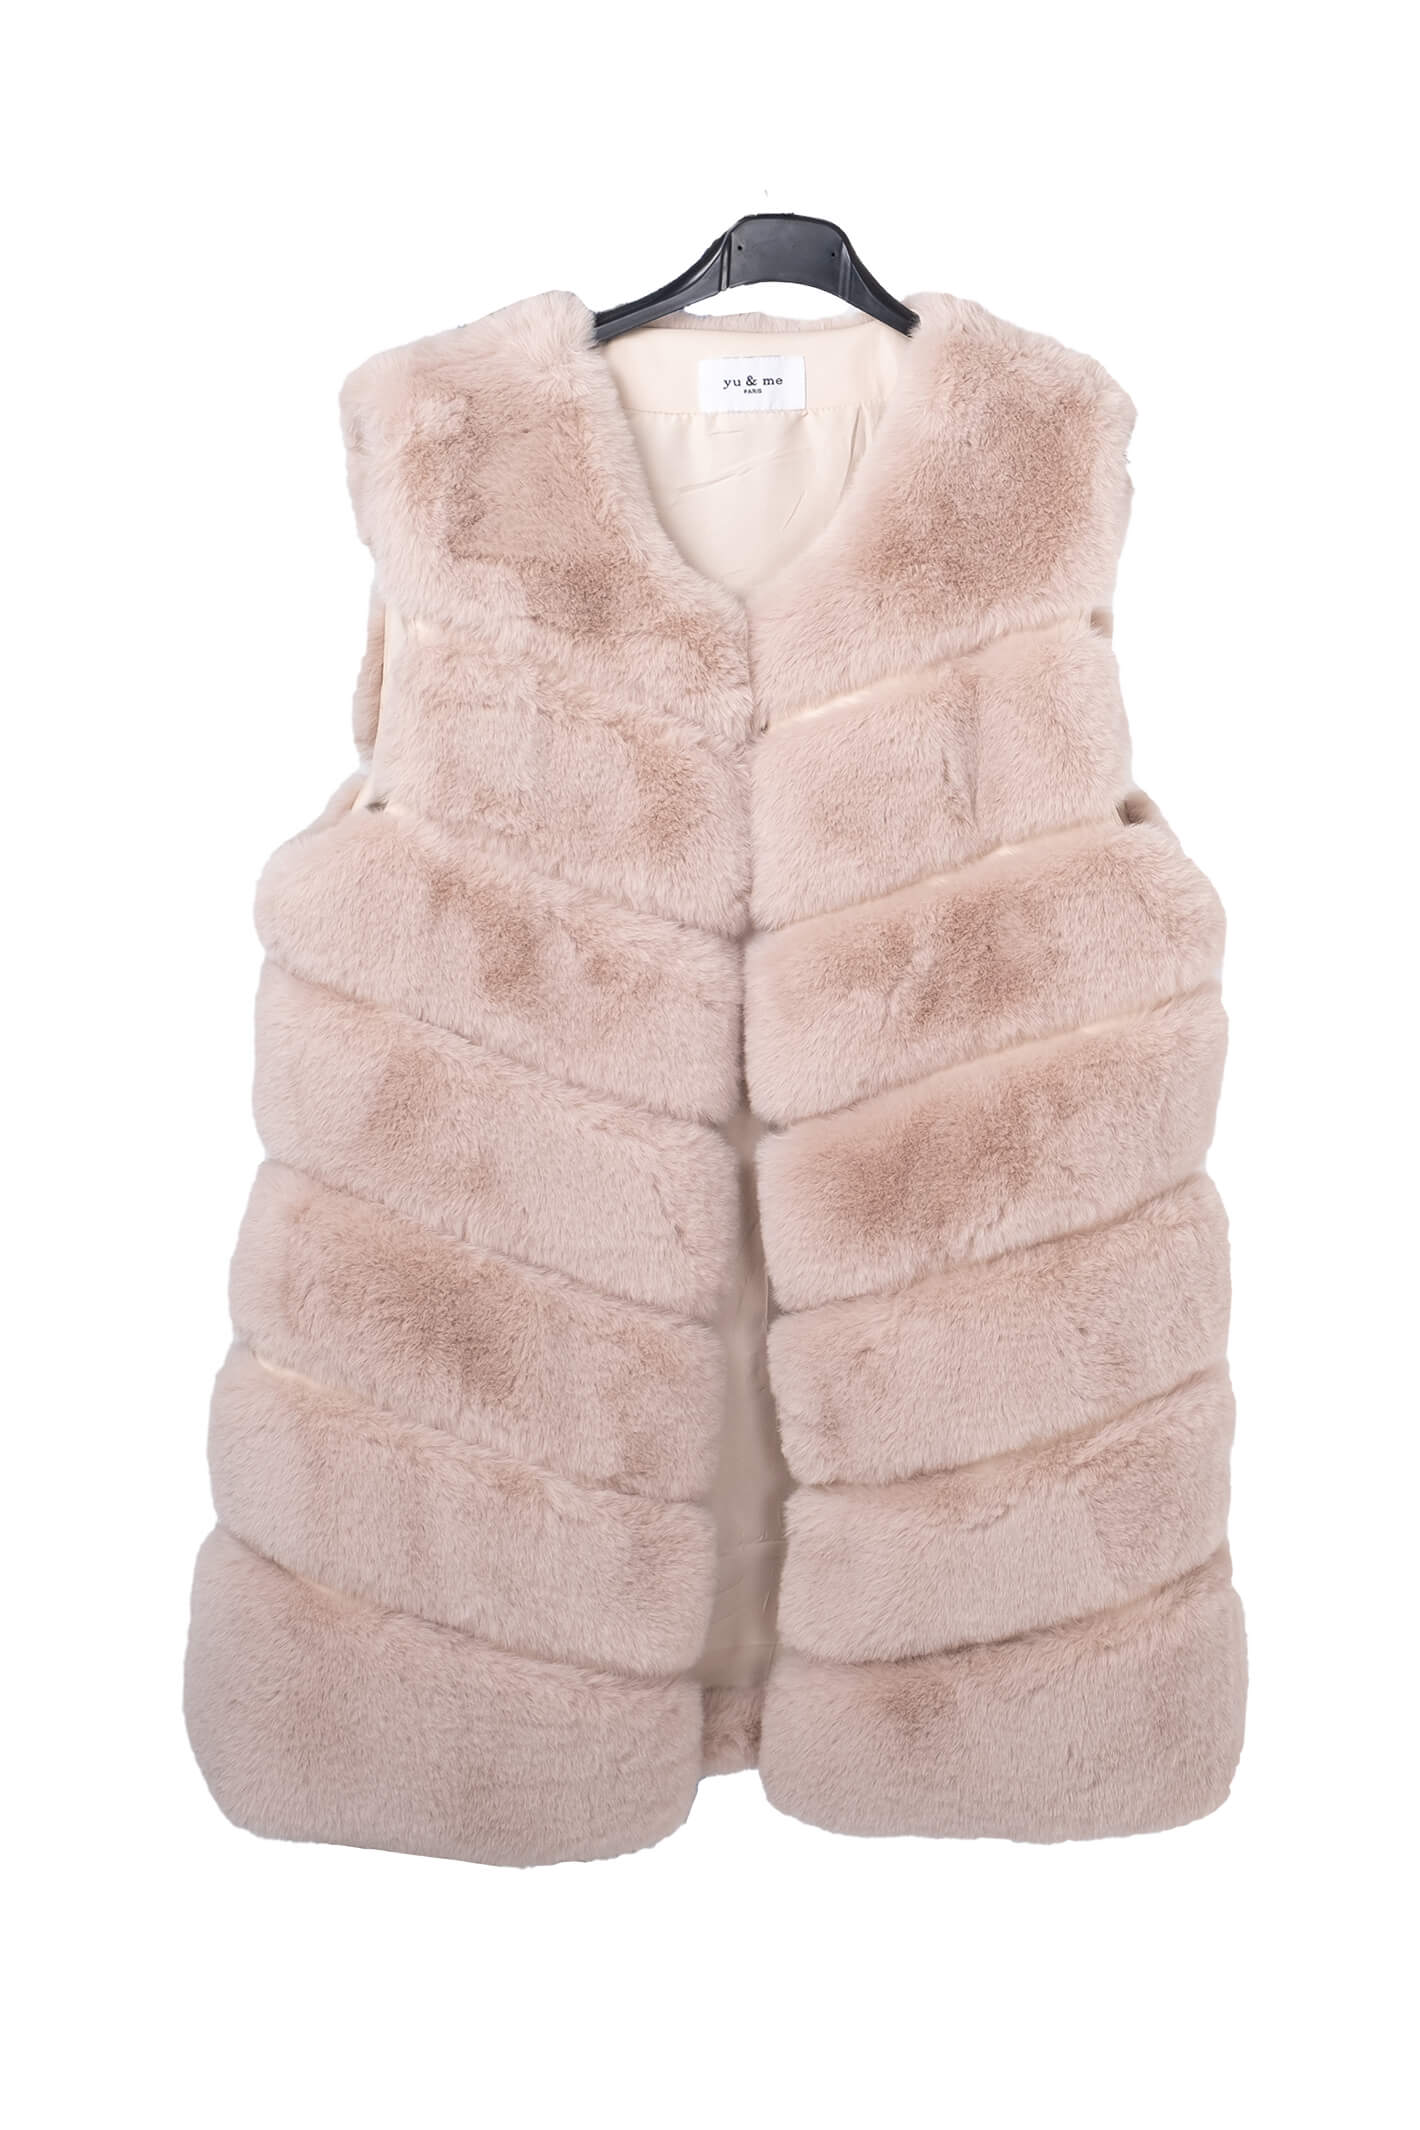 Layered Faux Fur Cream Gilet One Size